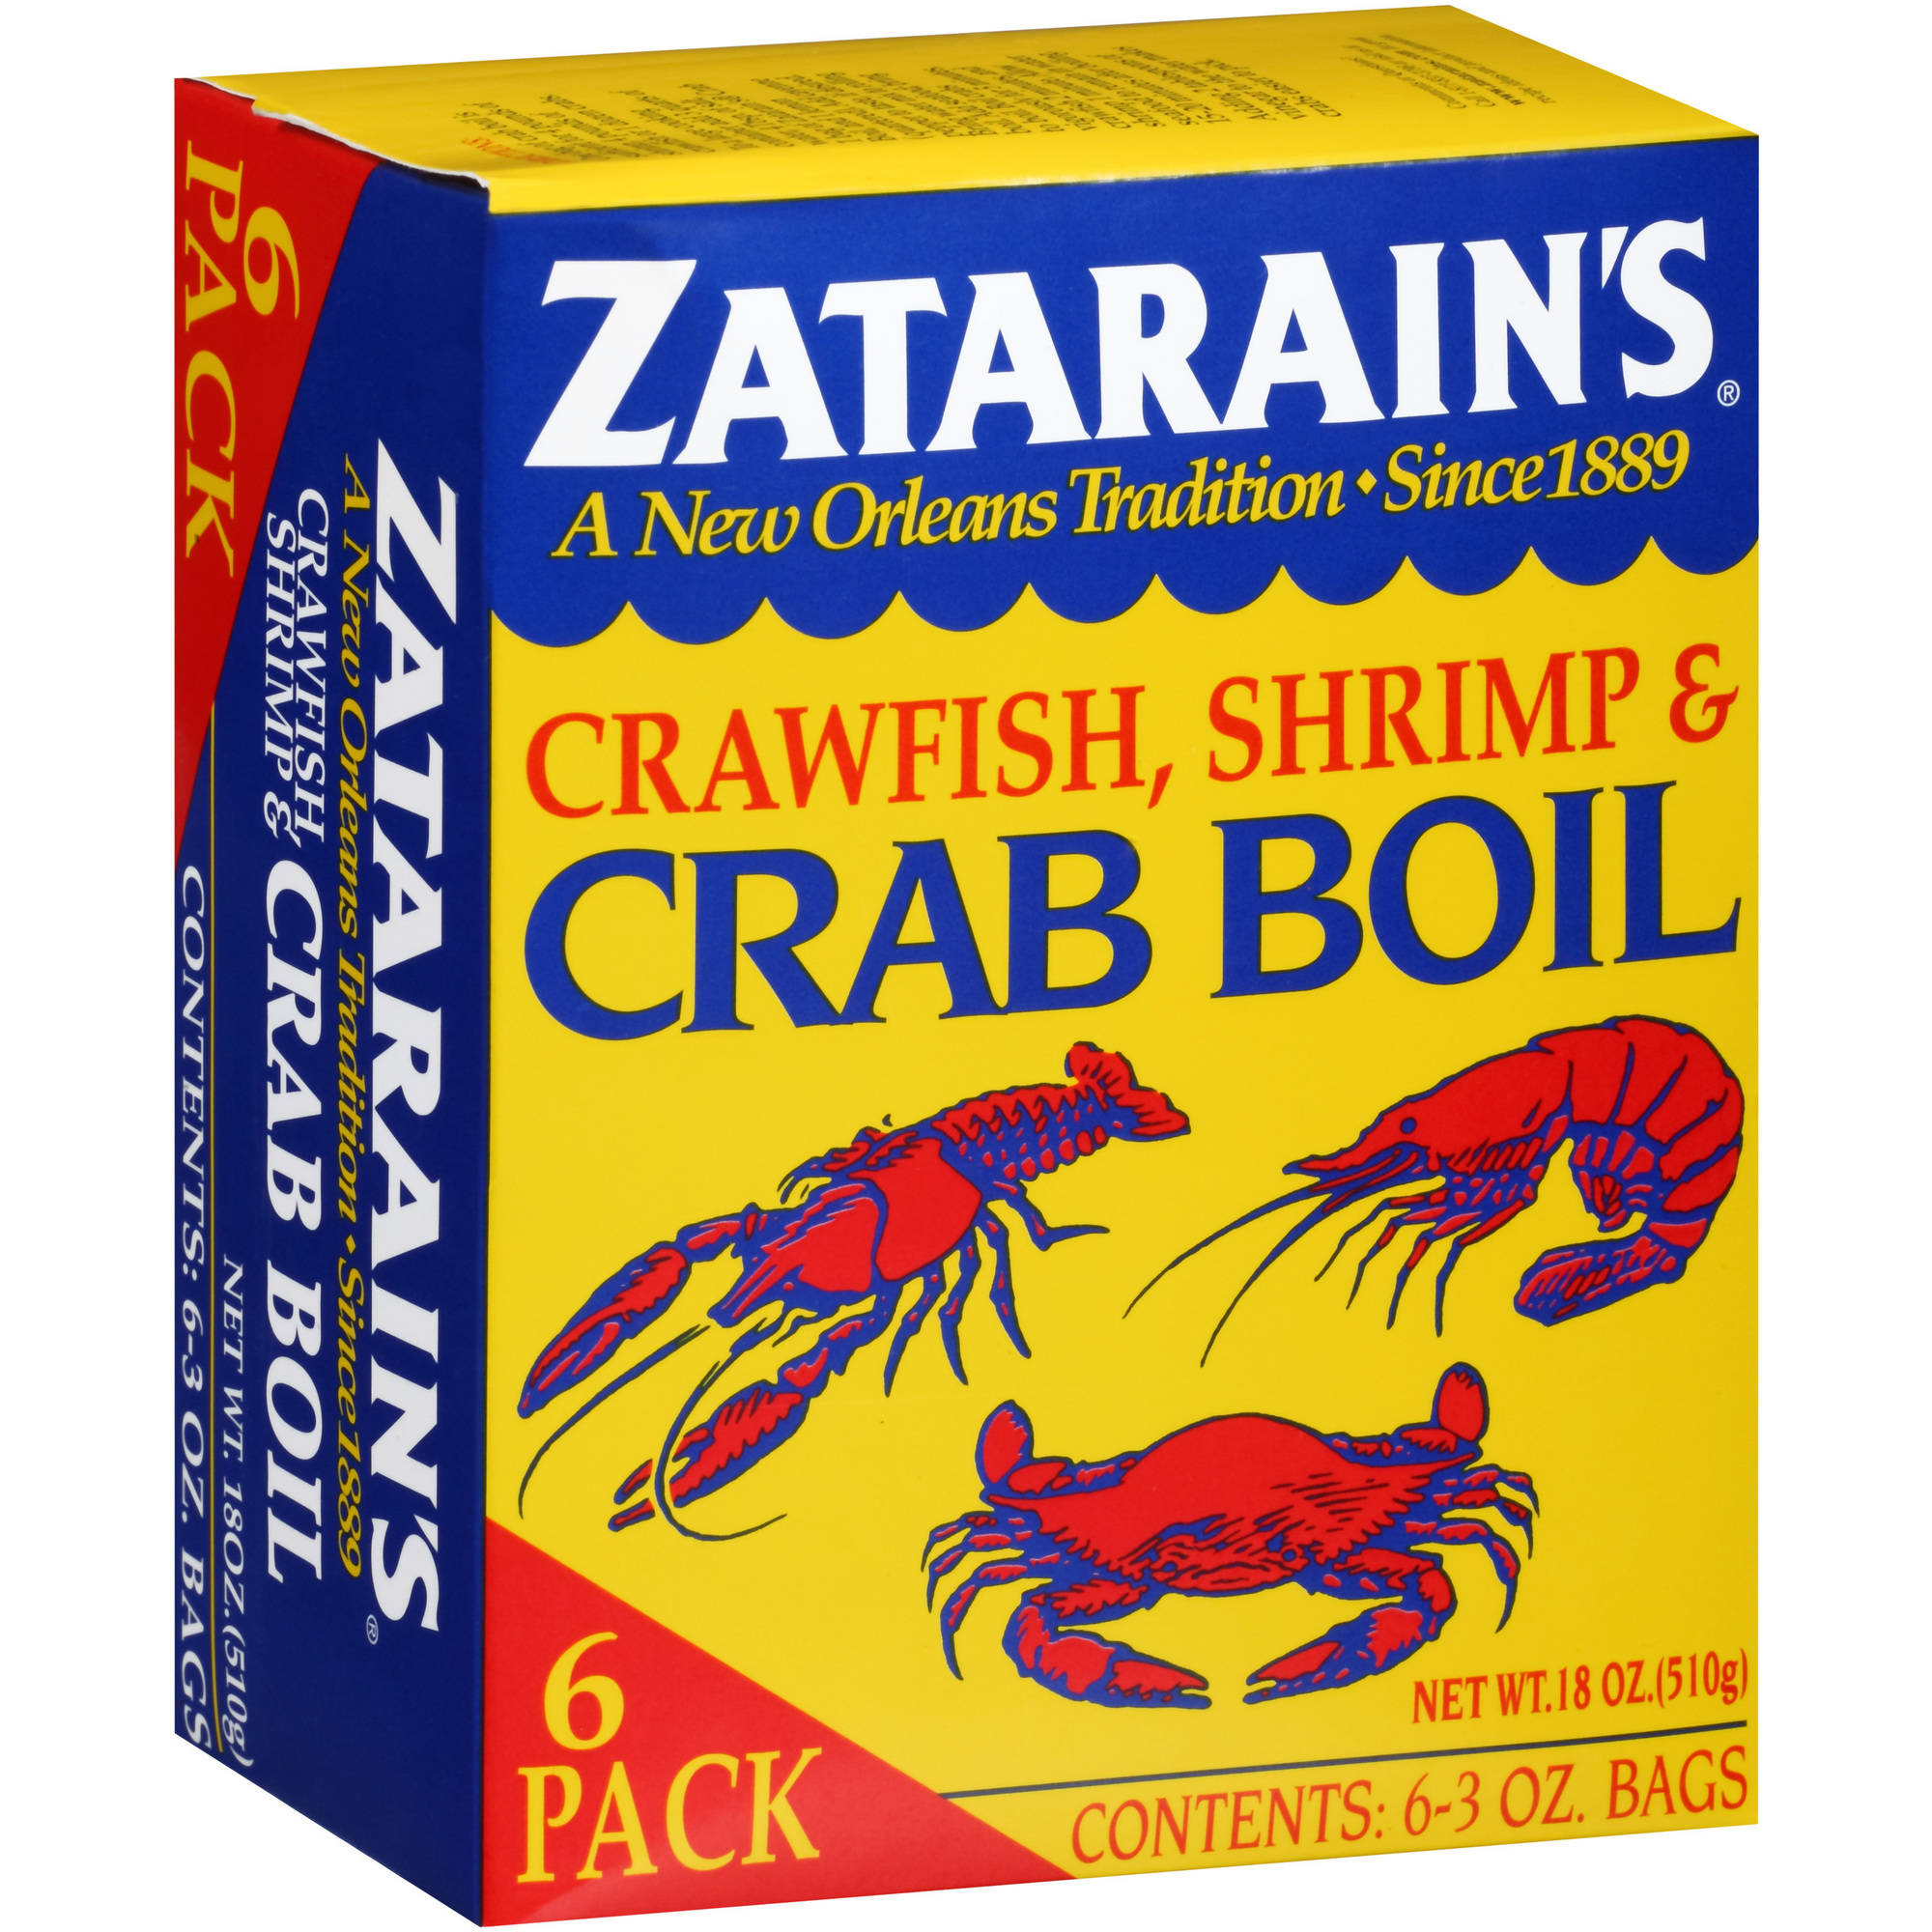 Zatarain's Crawfish, Shrimp & Crab Boil, 3 oz, 6 count